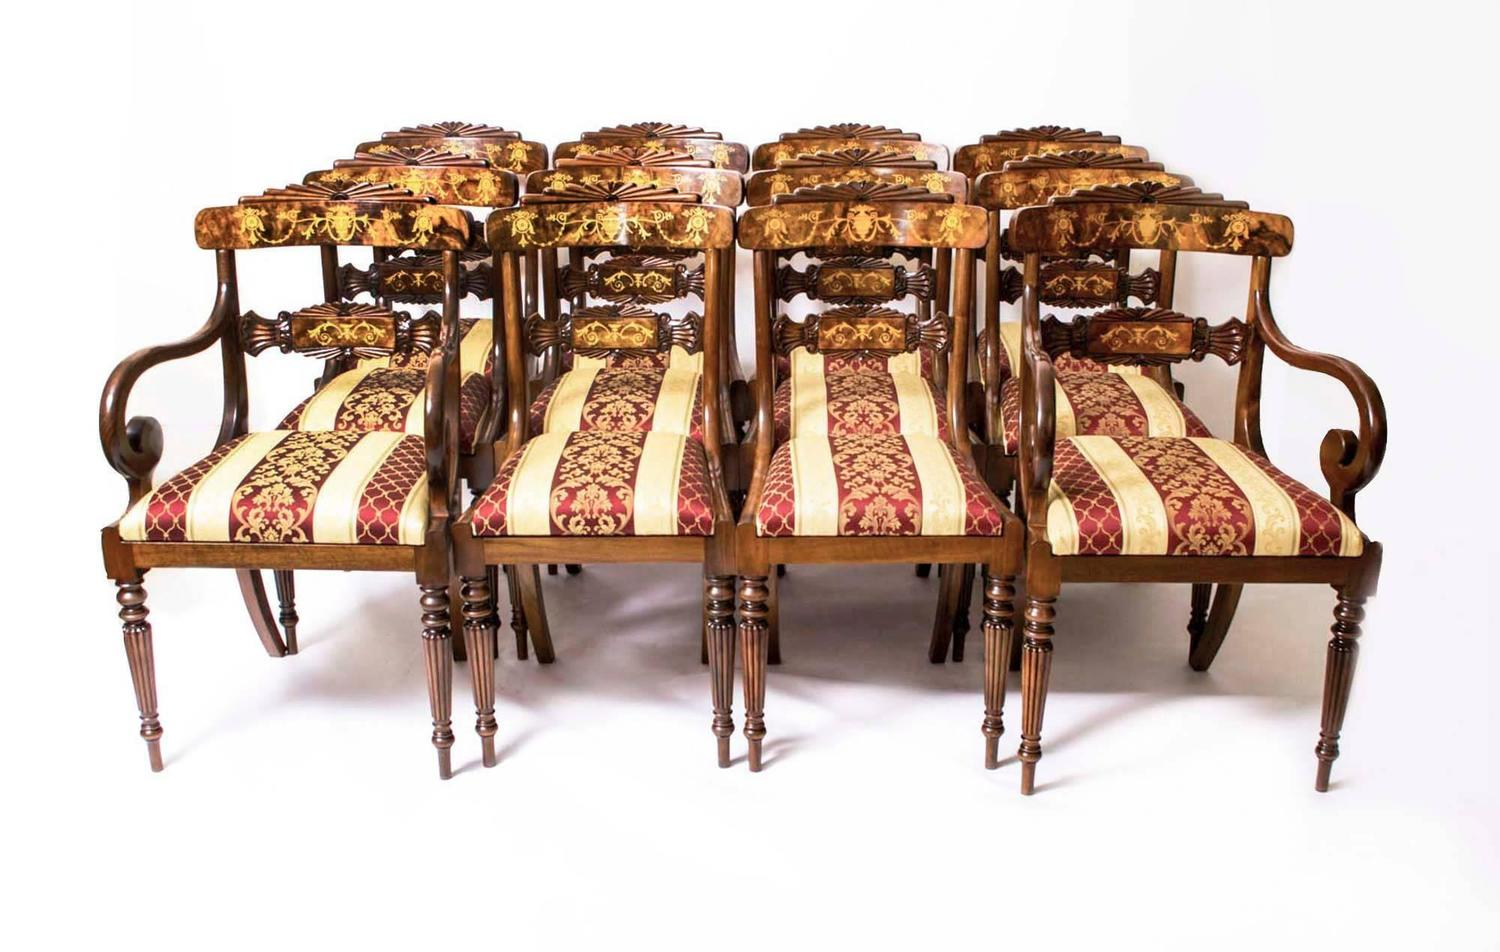 Delightful Huge Bespoke Handmade Marquetry Walnut Extending Dining Table 18 Chairs For  Sale At 1stdibs